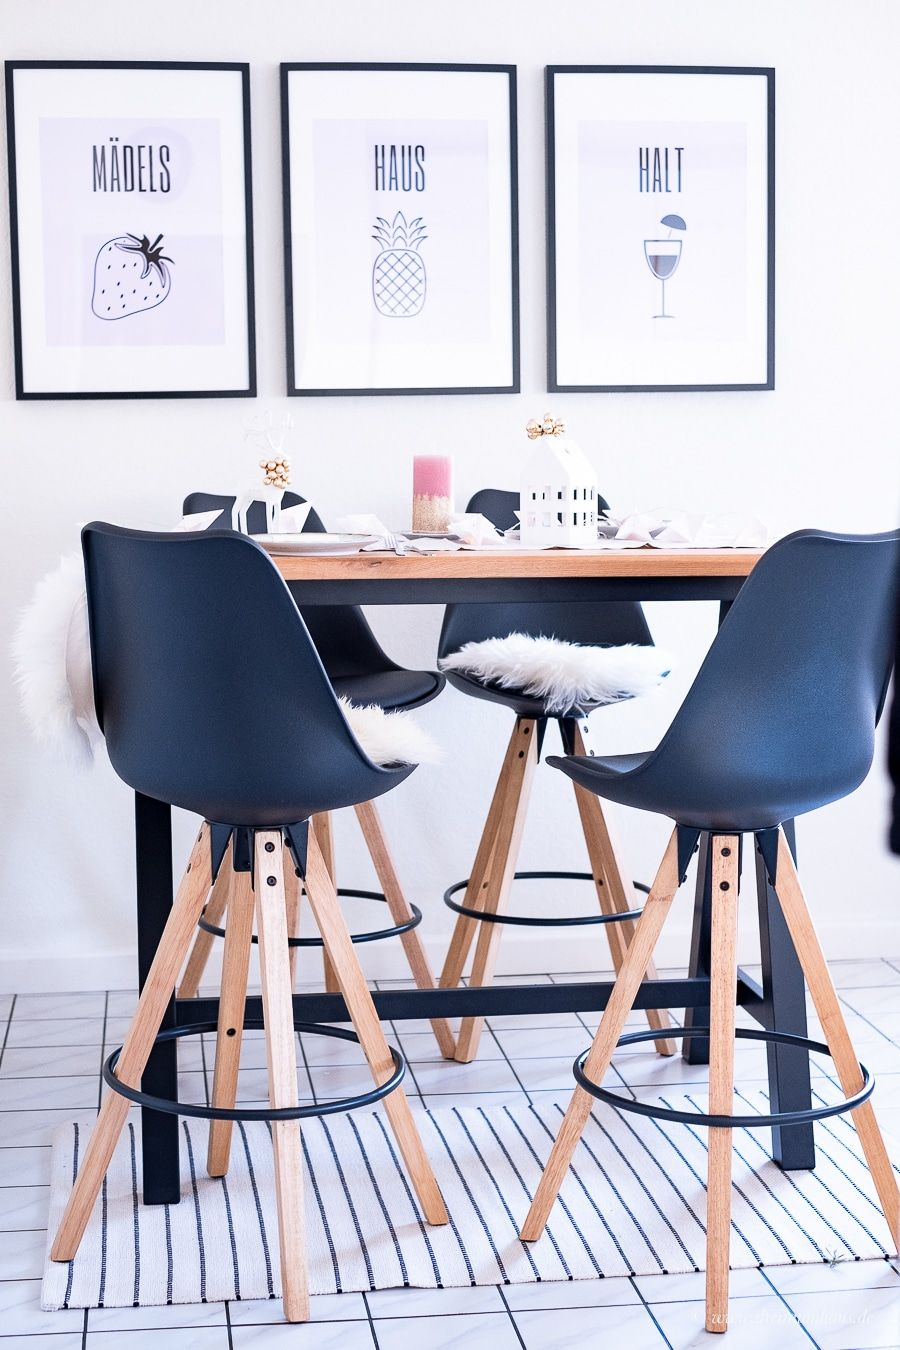 bartisch diy k che stehtisch selber bauen h ngeschrank k che gr e mit ger ten. Black Bedroom Furniture Sets. Home Design Ideas